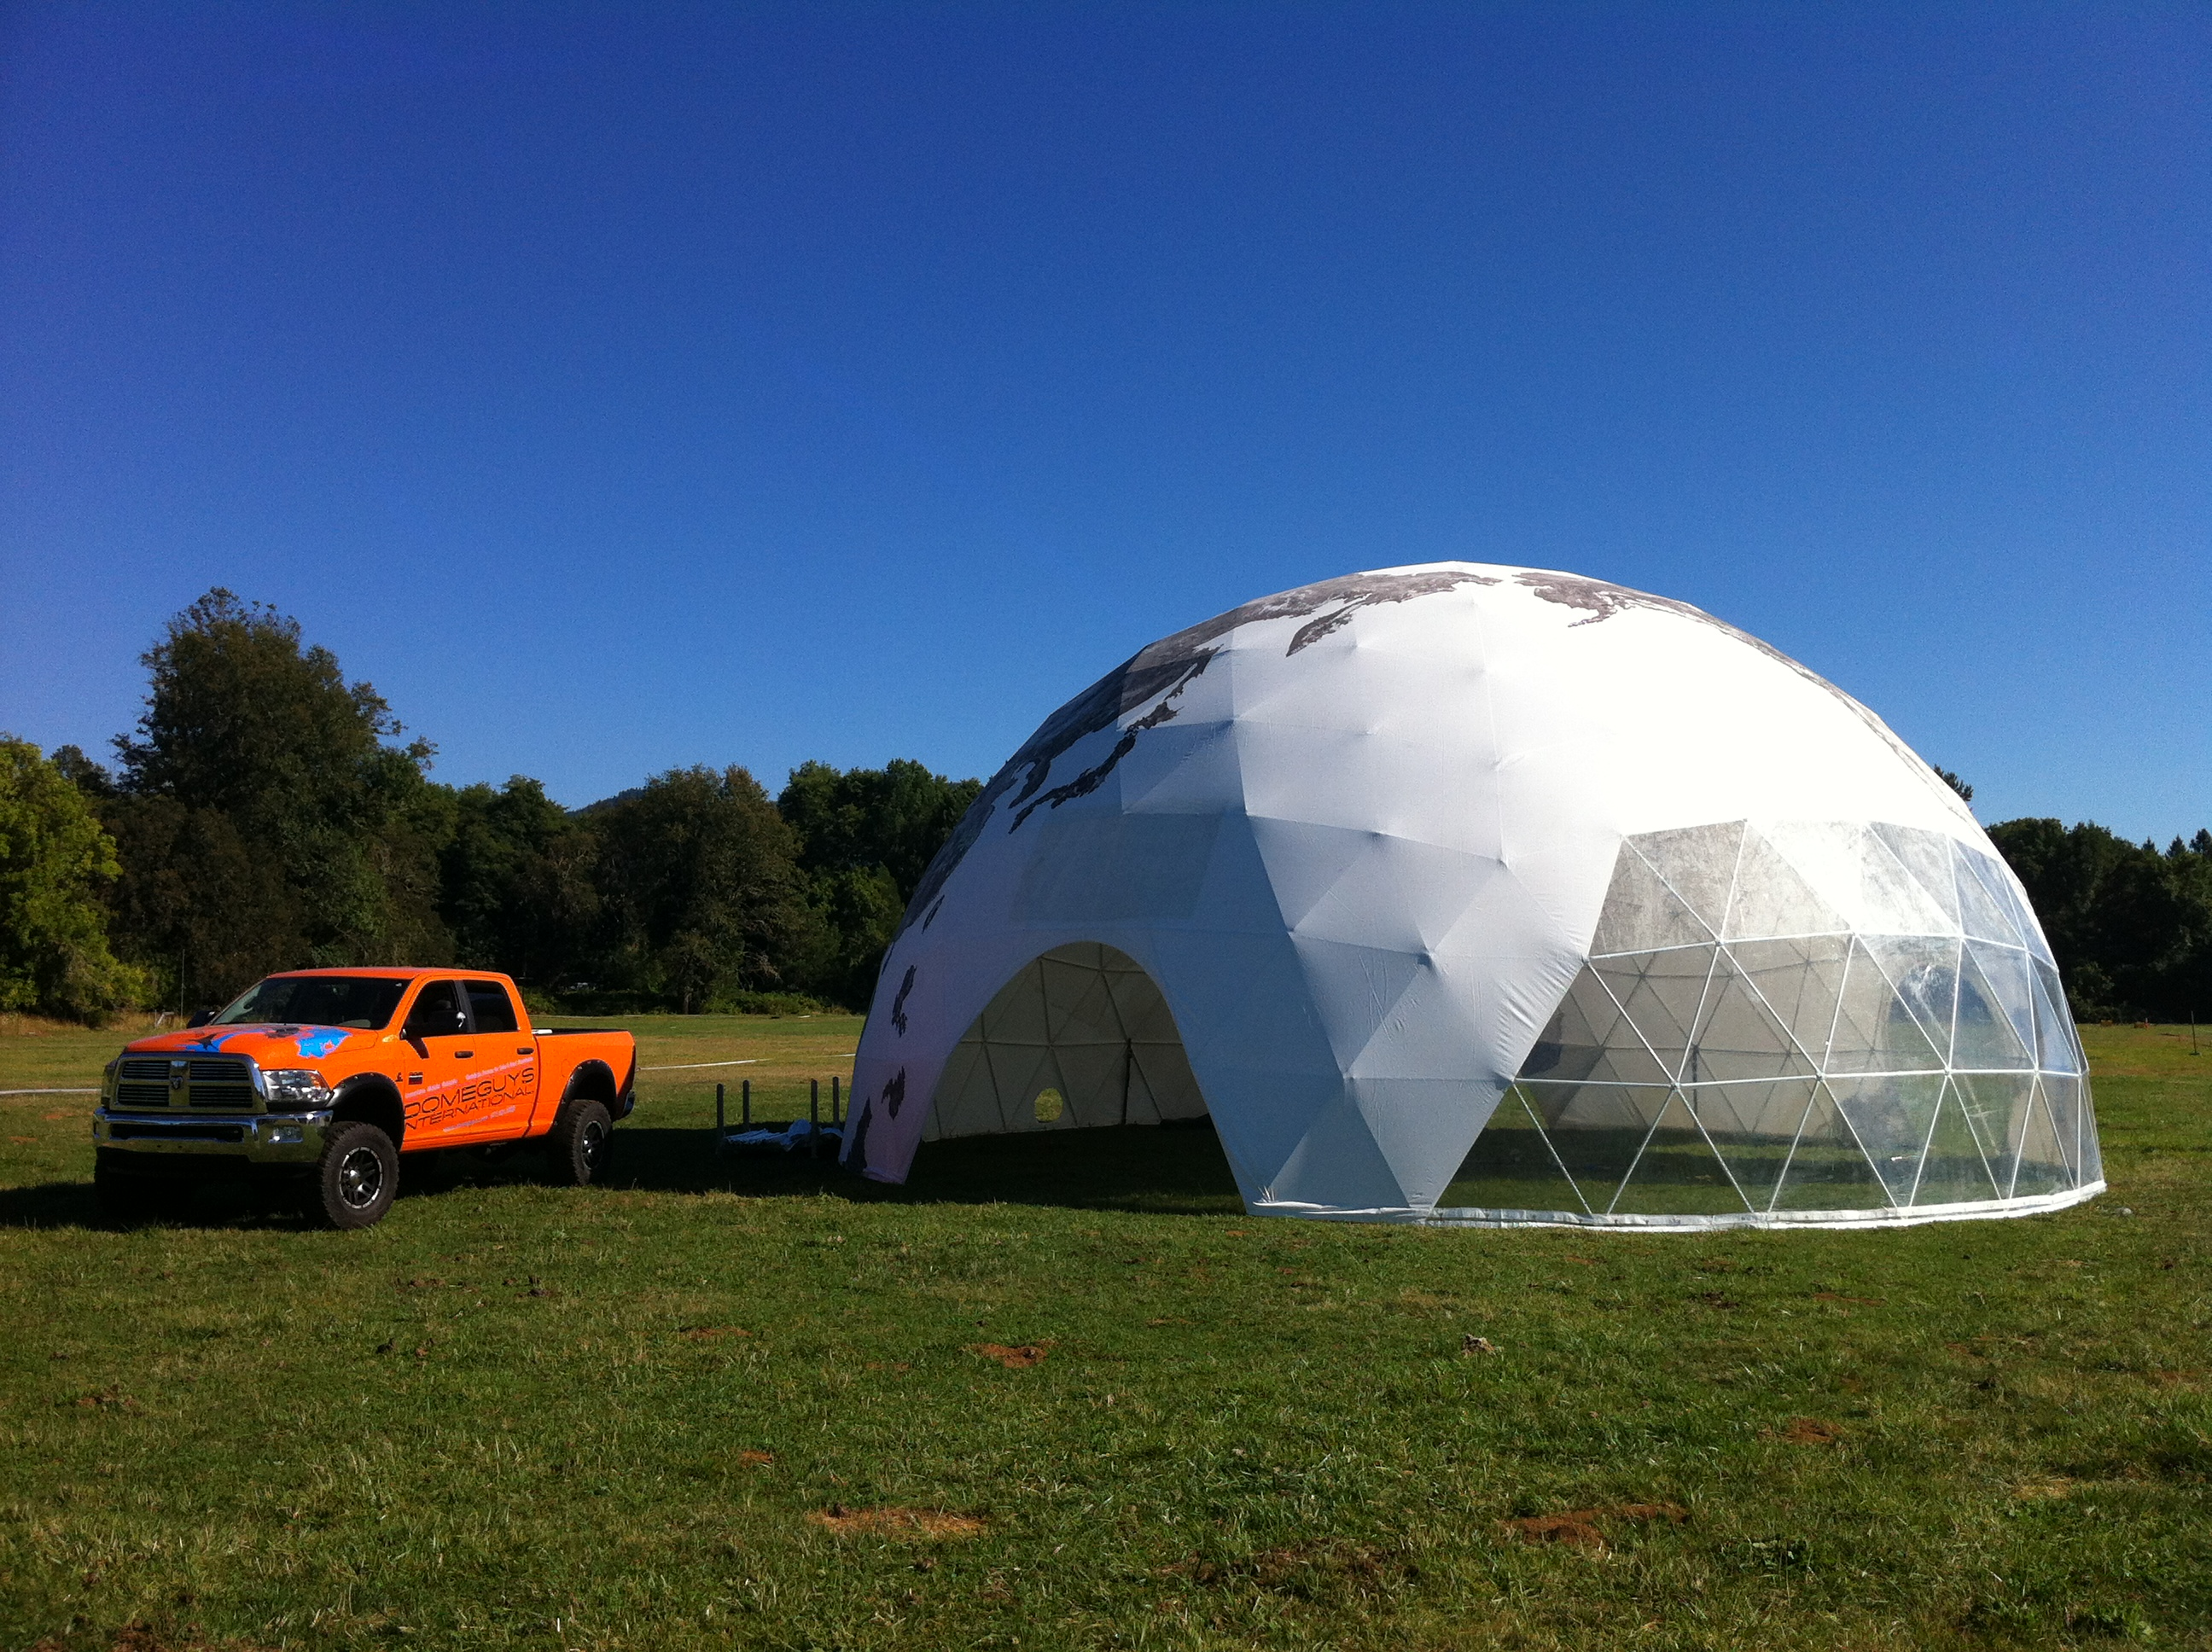 half clear transparent geodesic dome -Shelter geodesic dome tent for sale-10m-20m dome 24 & half clear transparent geodesic dome -Shelter geodesic dome tent ...